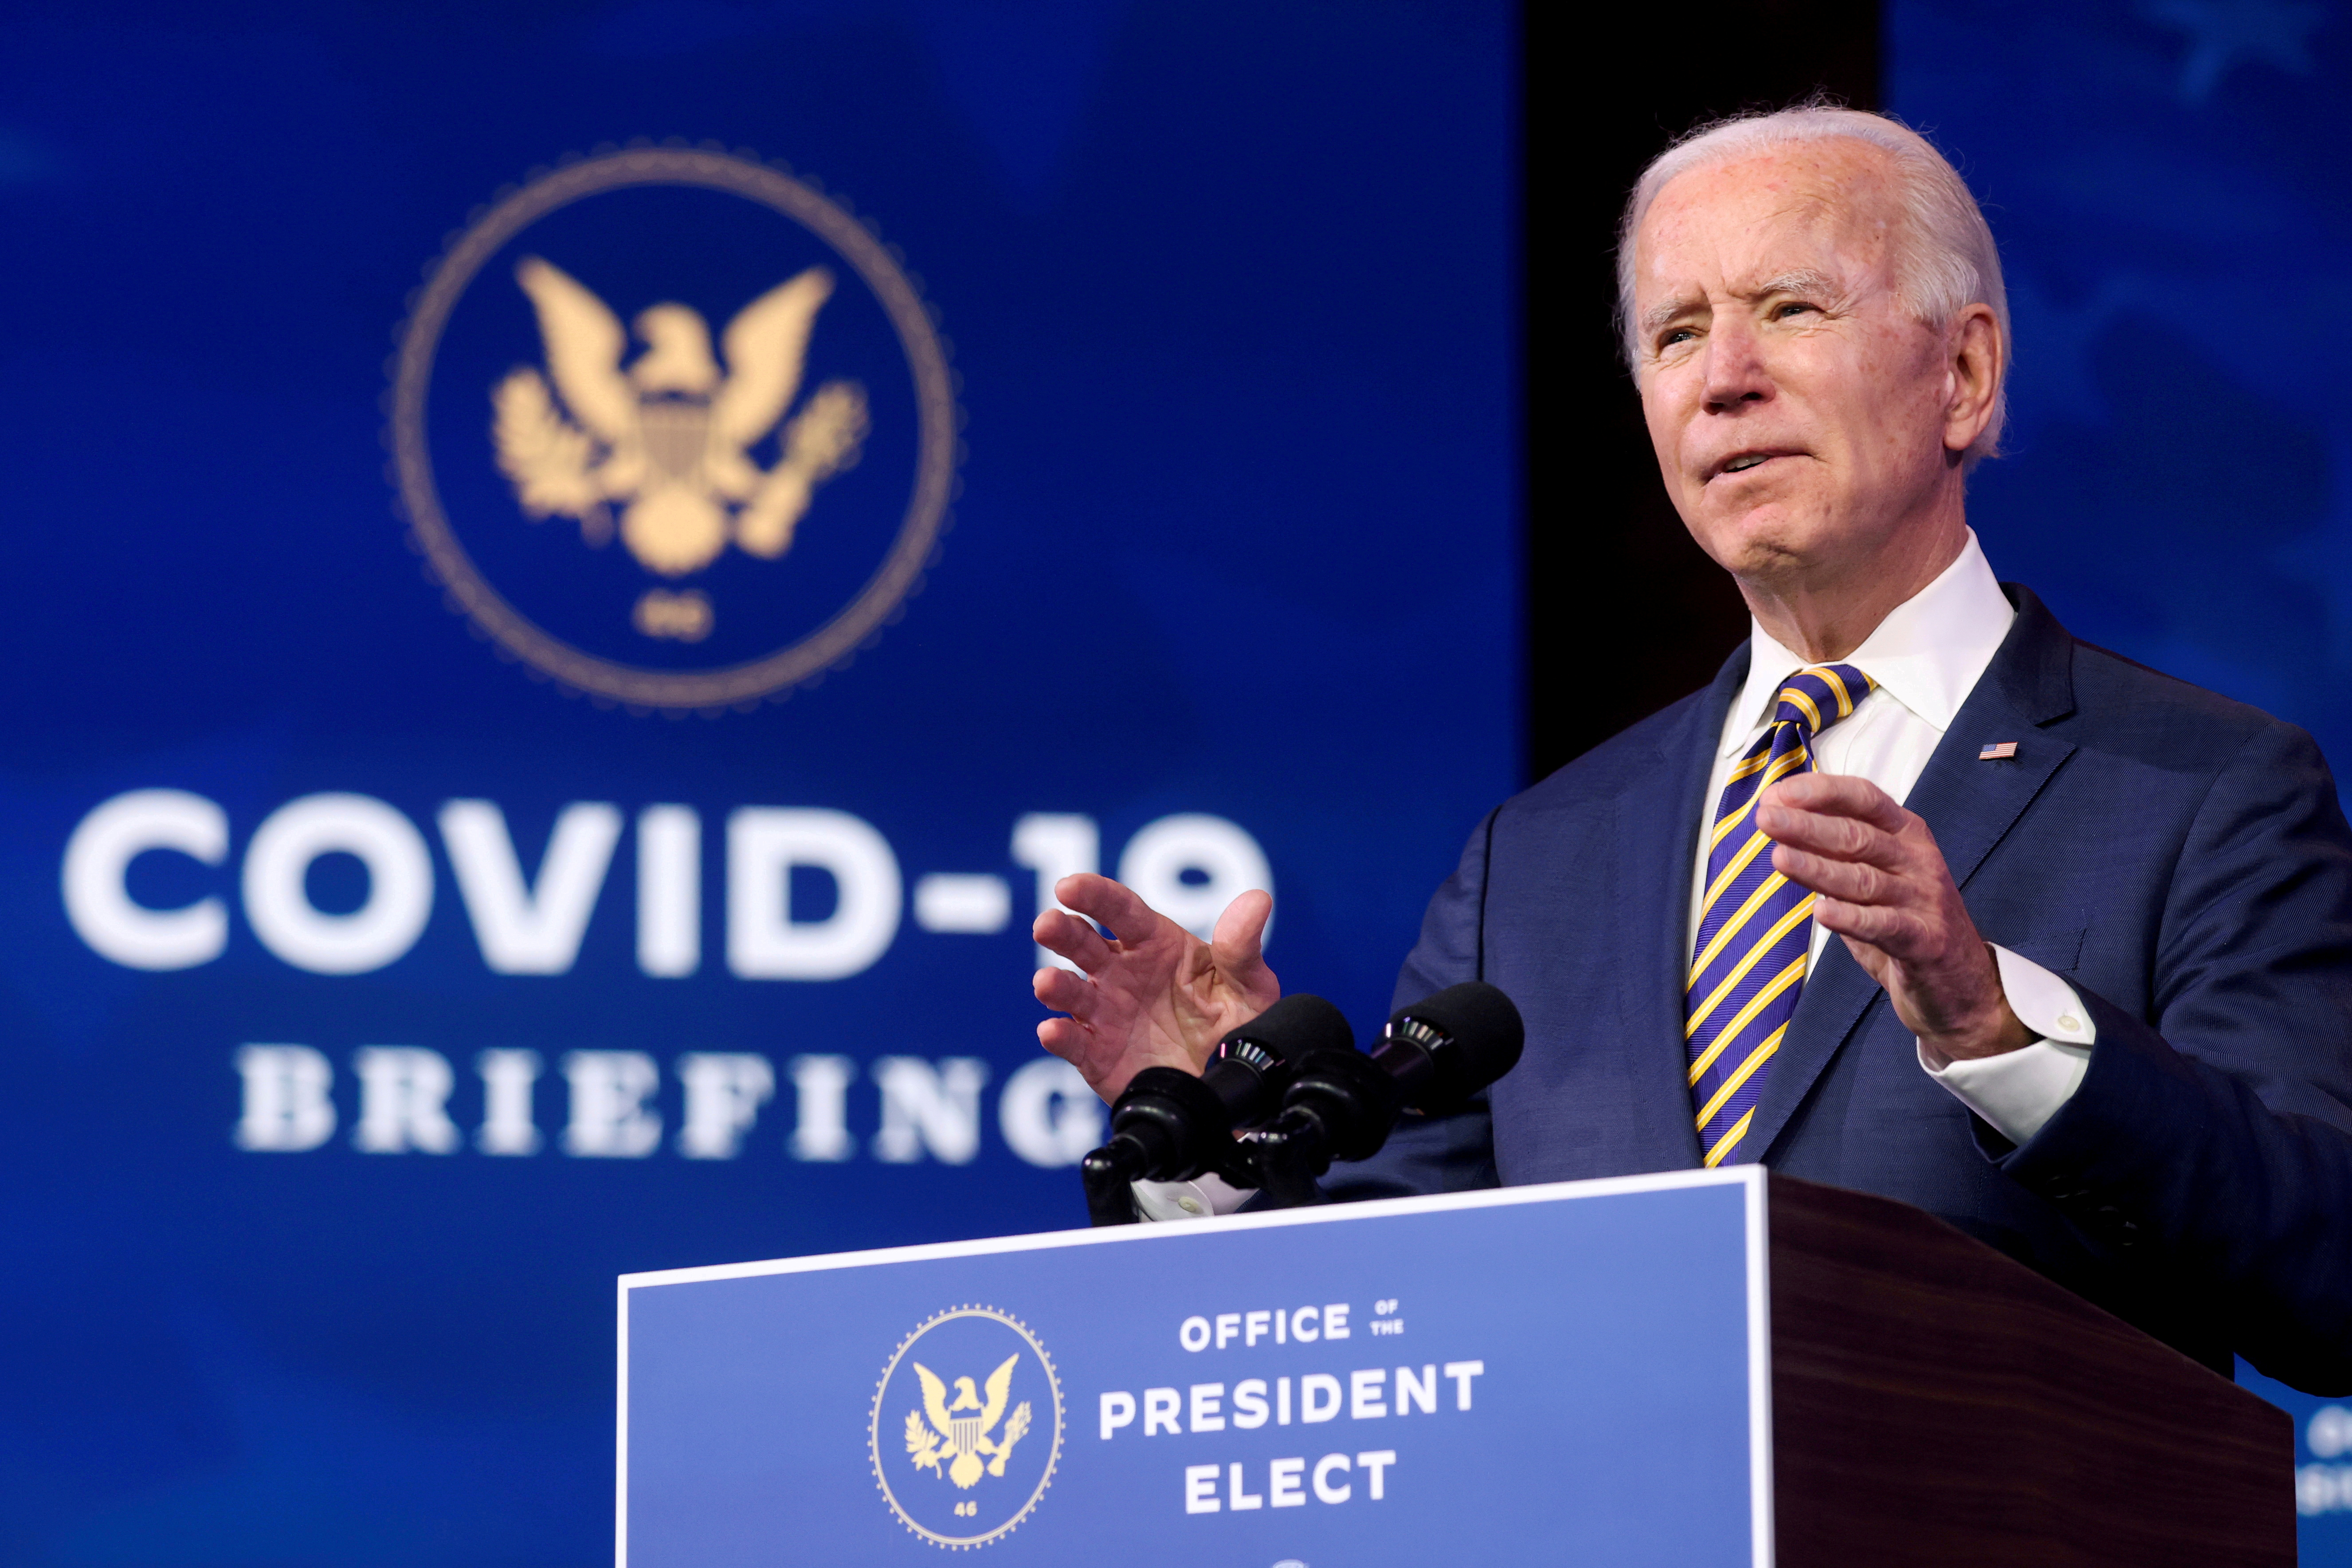 U.S. President-elect Joe Biden delivers remarks on the U.S. response to the coronavirus disease (COVID-19) outbreak, at his transition headquarters in Wilmington, Delaware, U.S., December 29, 2020. REUTERS/Jonathan Ernst/File Photo